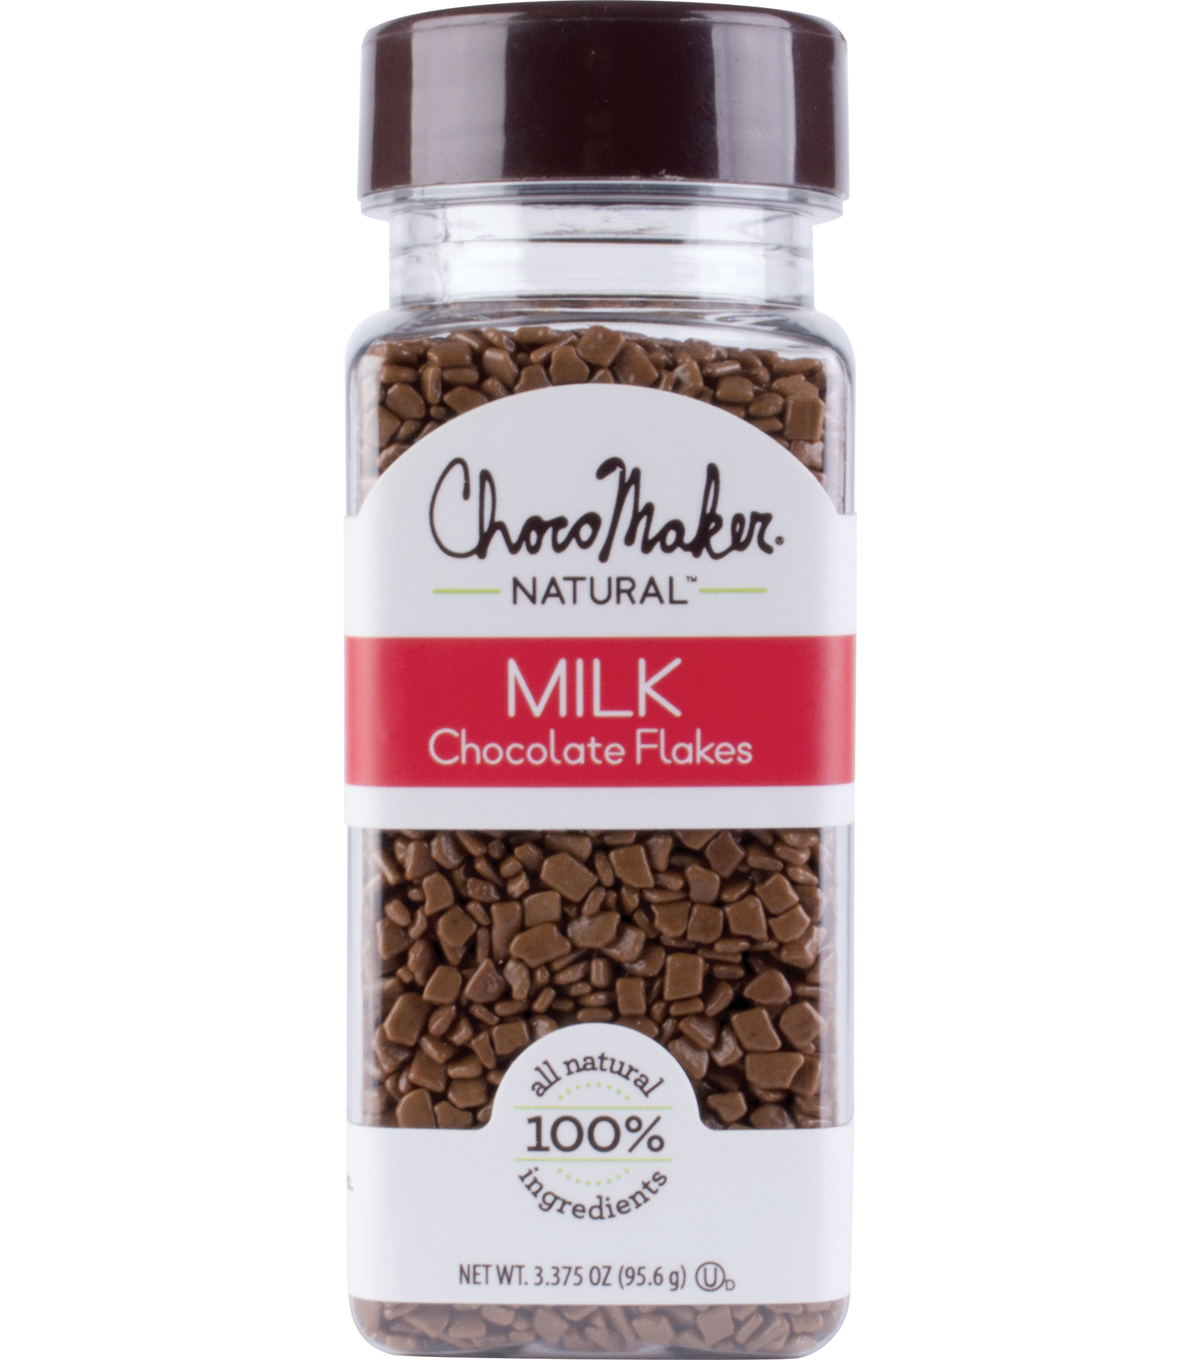 ChocoMaker Natural 3.38 oz. Milk Chocolate Flakes